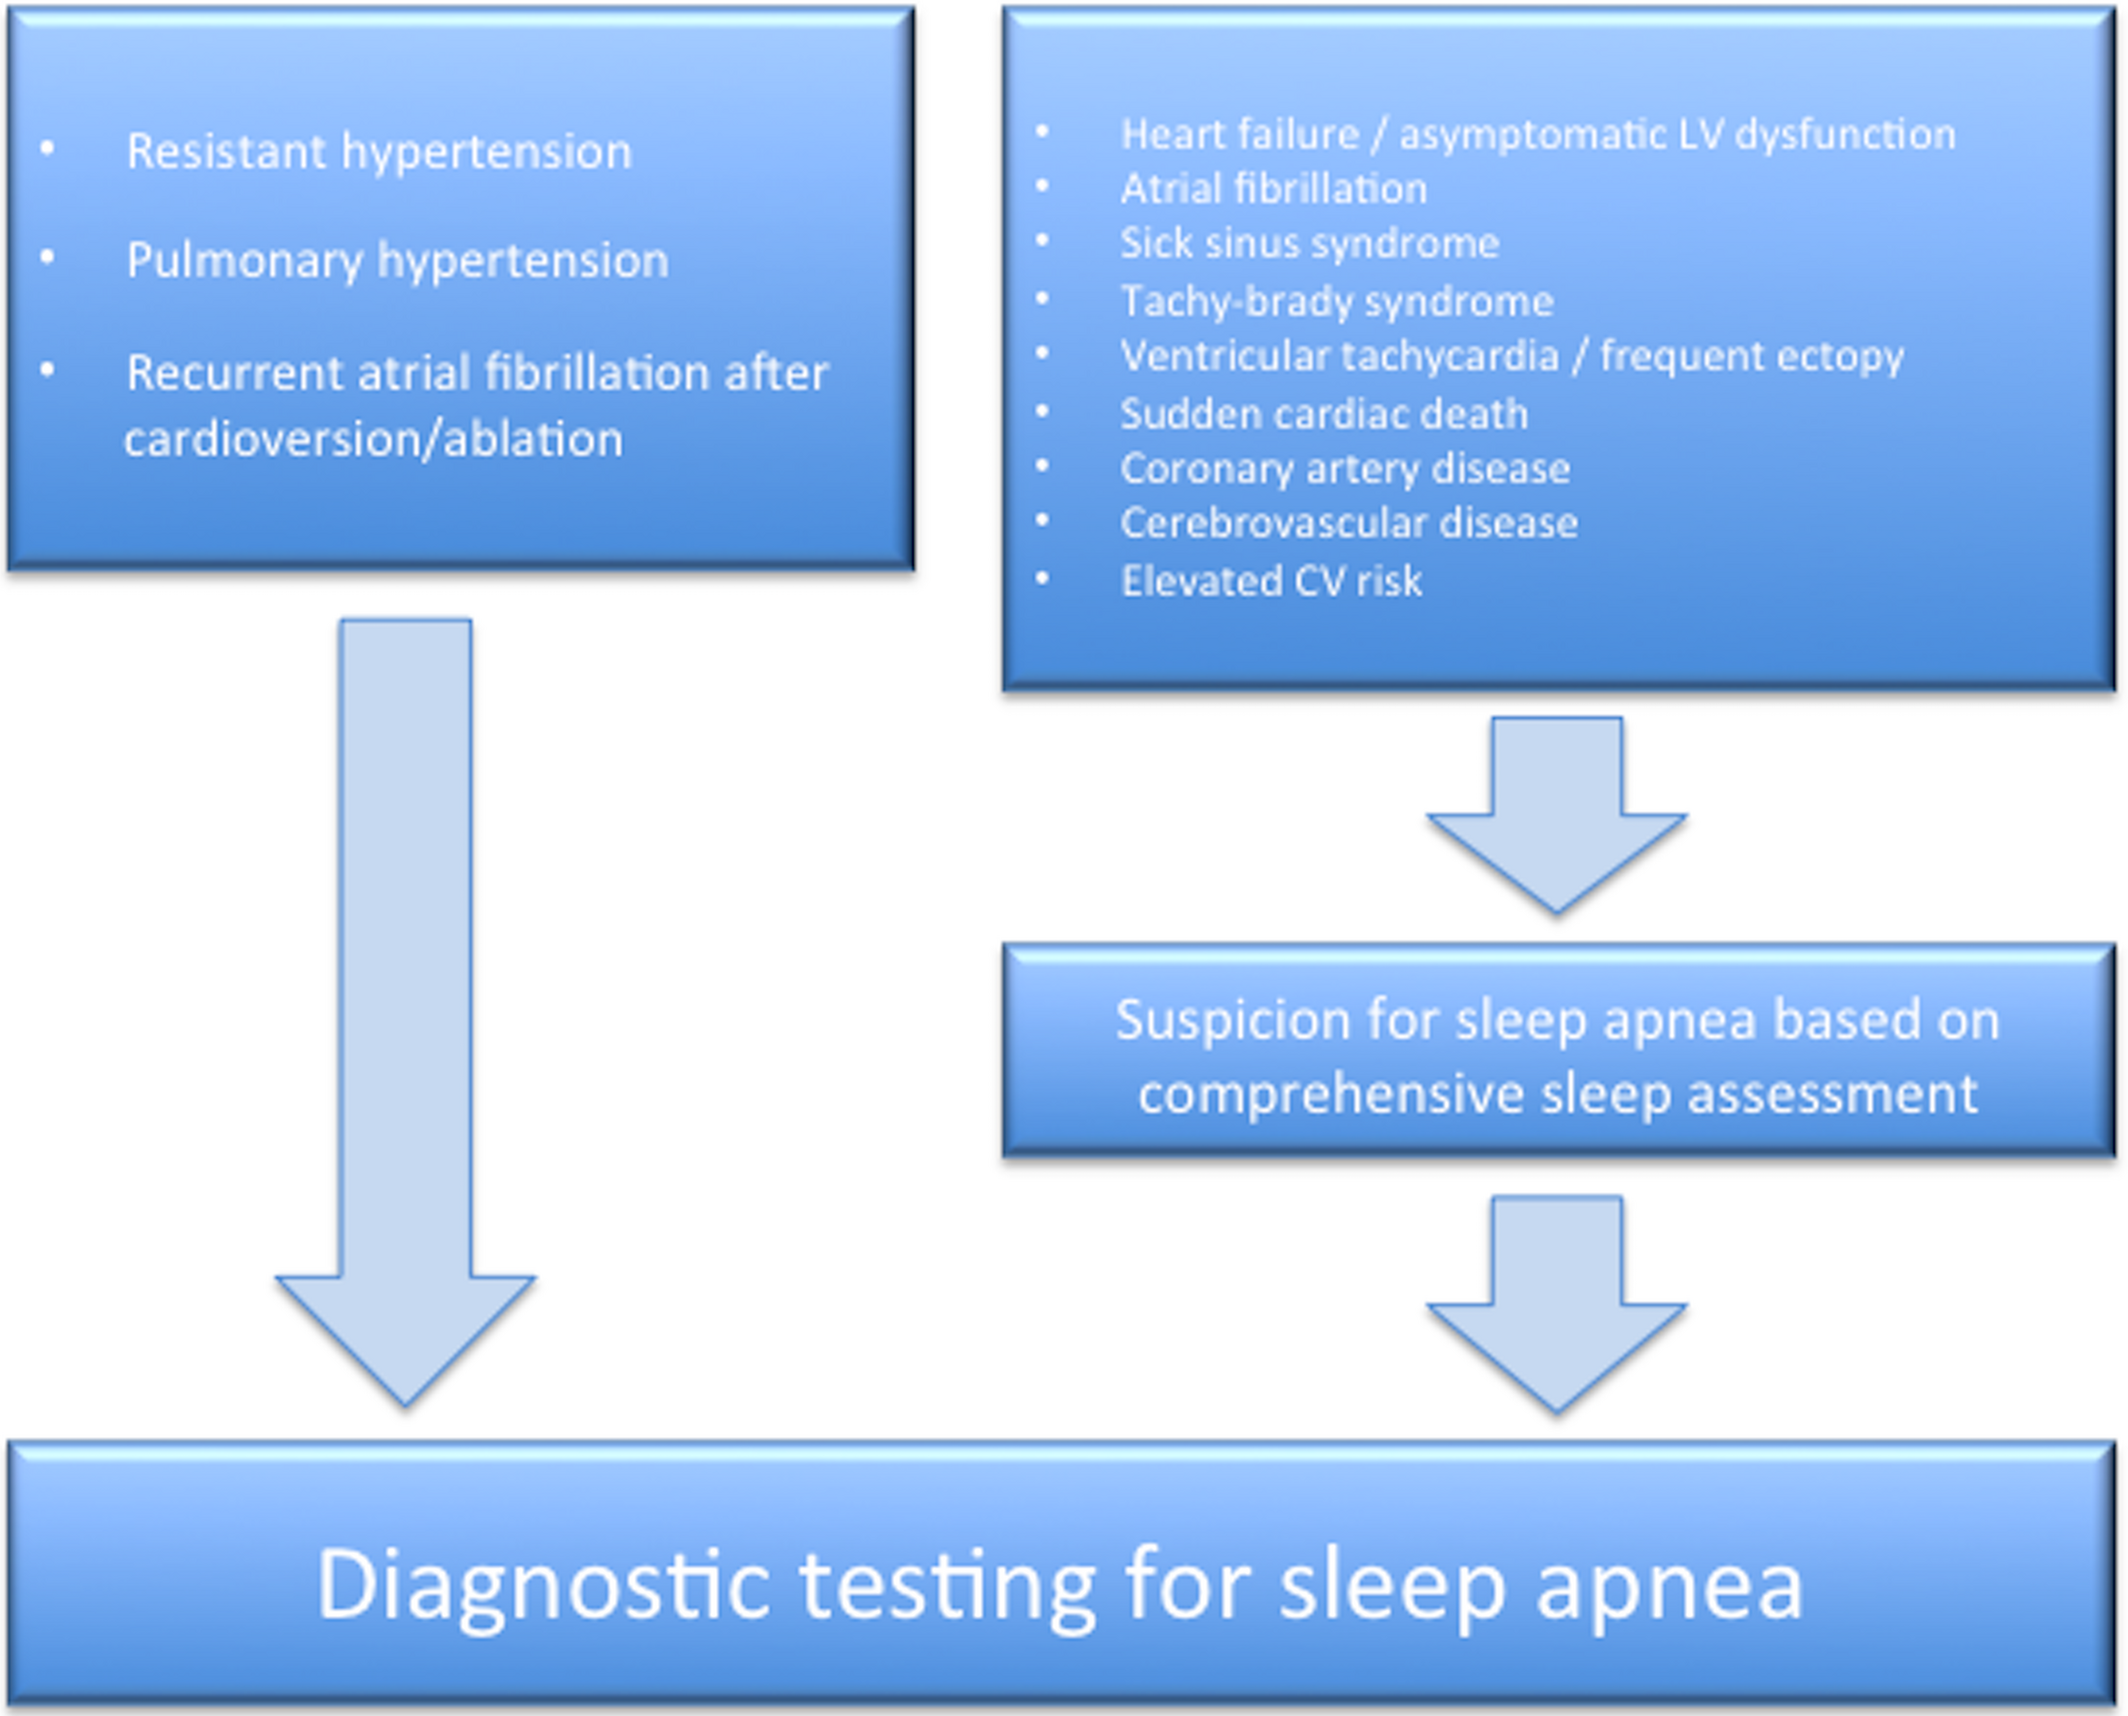 Obstructive Sleep Apnea in Cardiovascular Disease: A Review